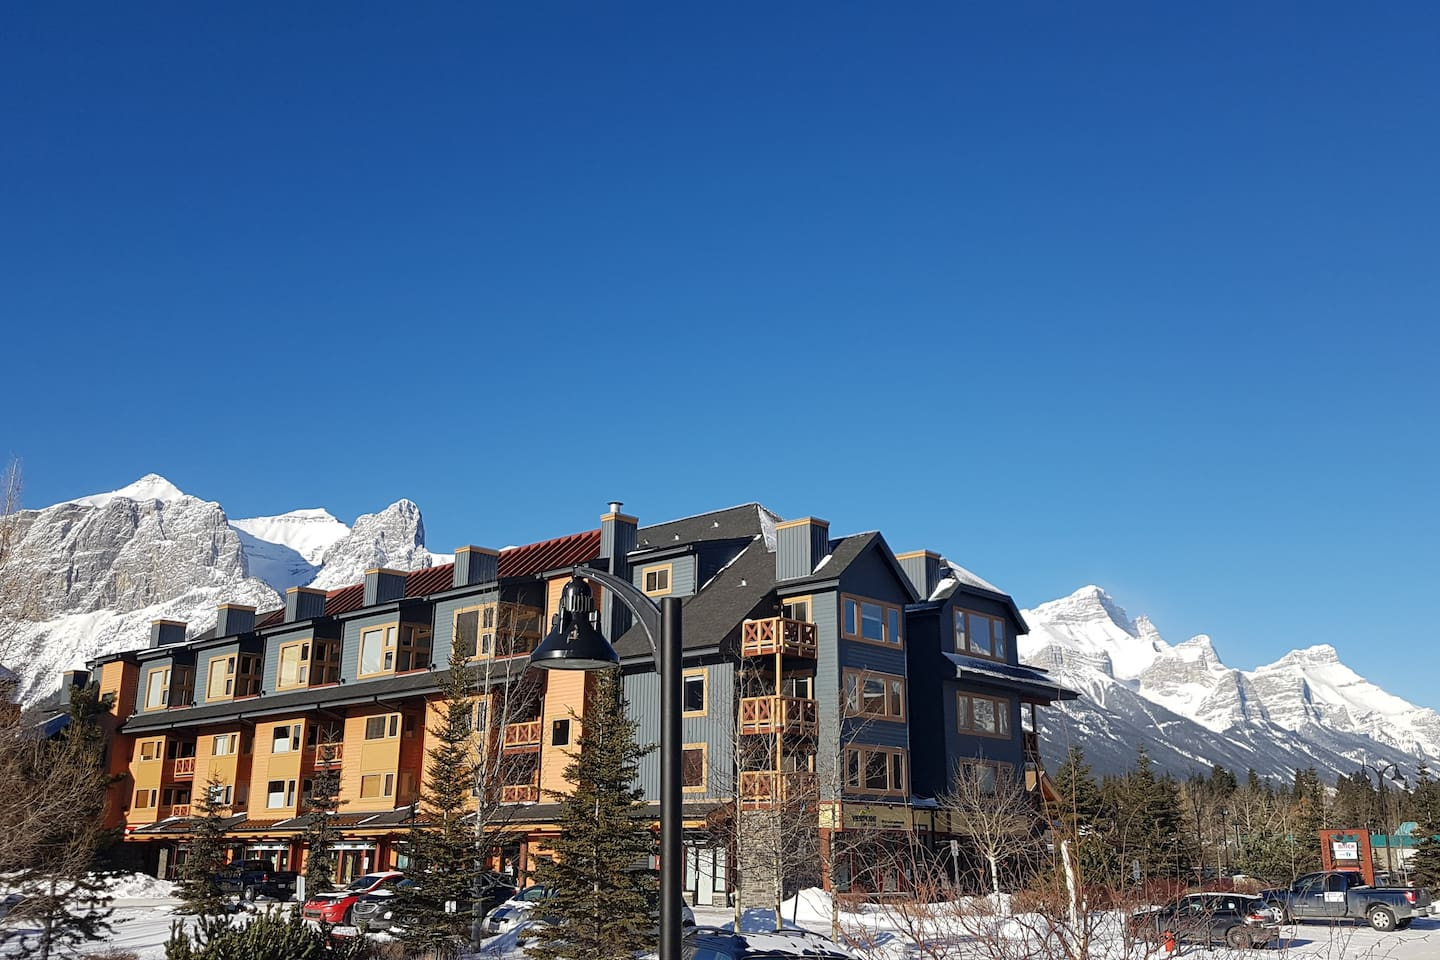 Canmore Crossing has the best location downtown with everything steps away.